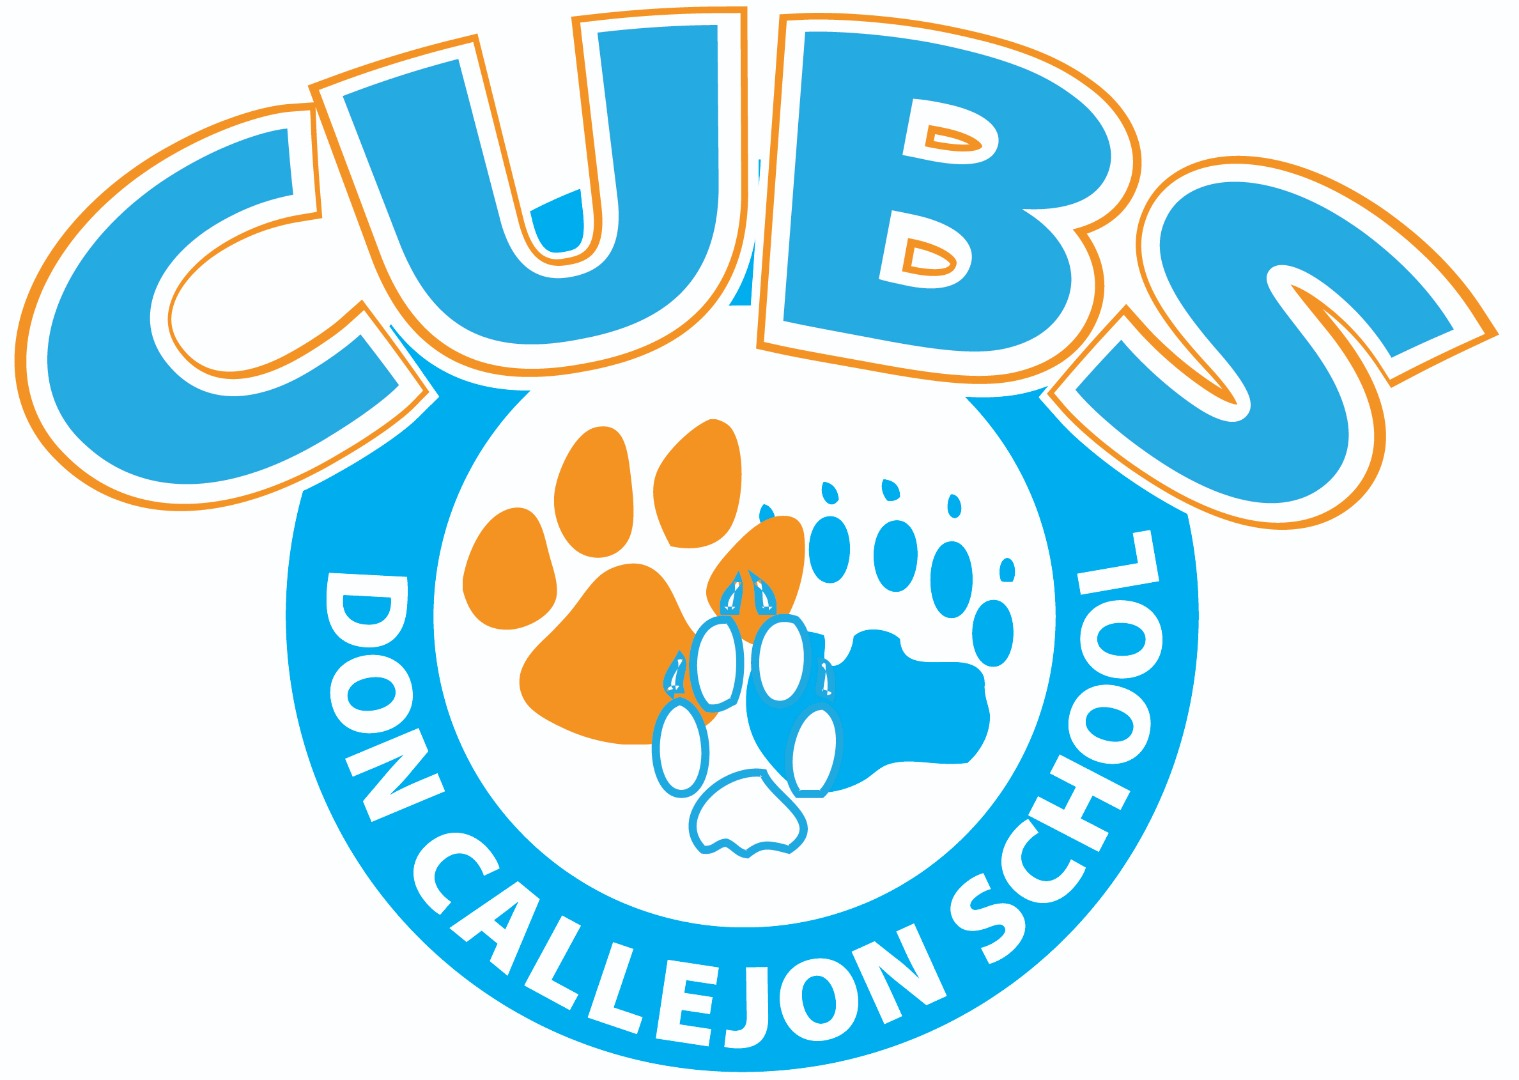 Blue and Orange School Cubs Logo